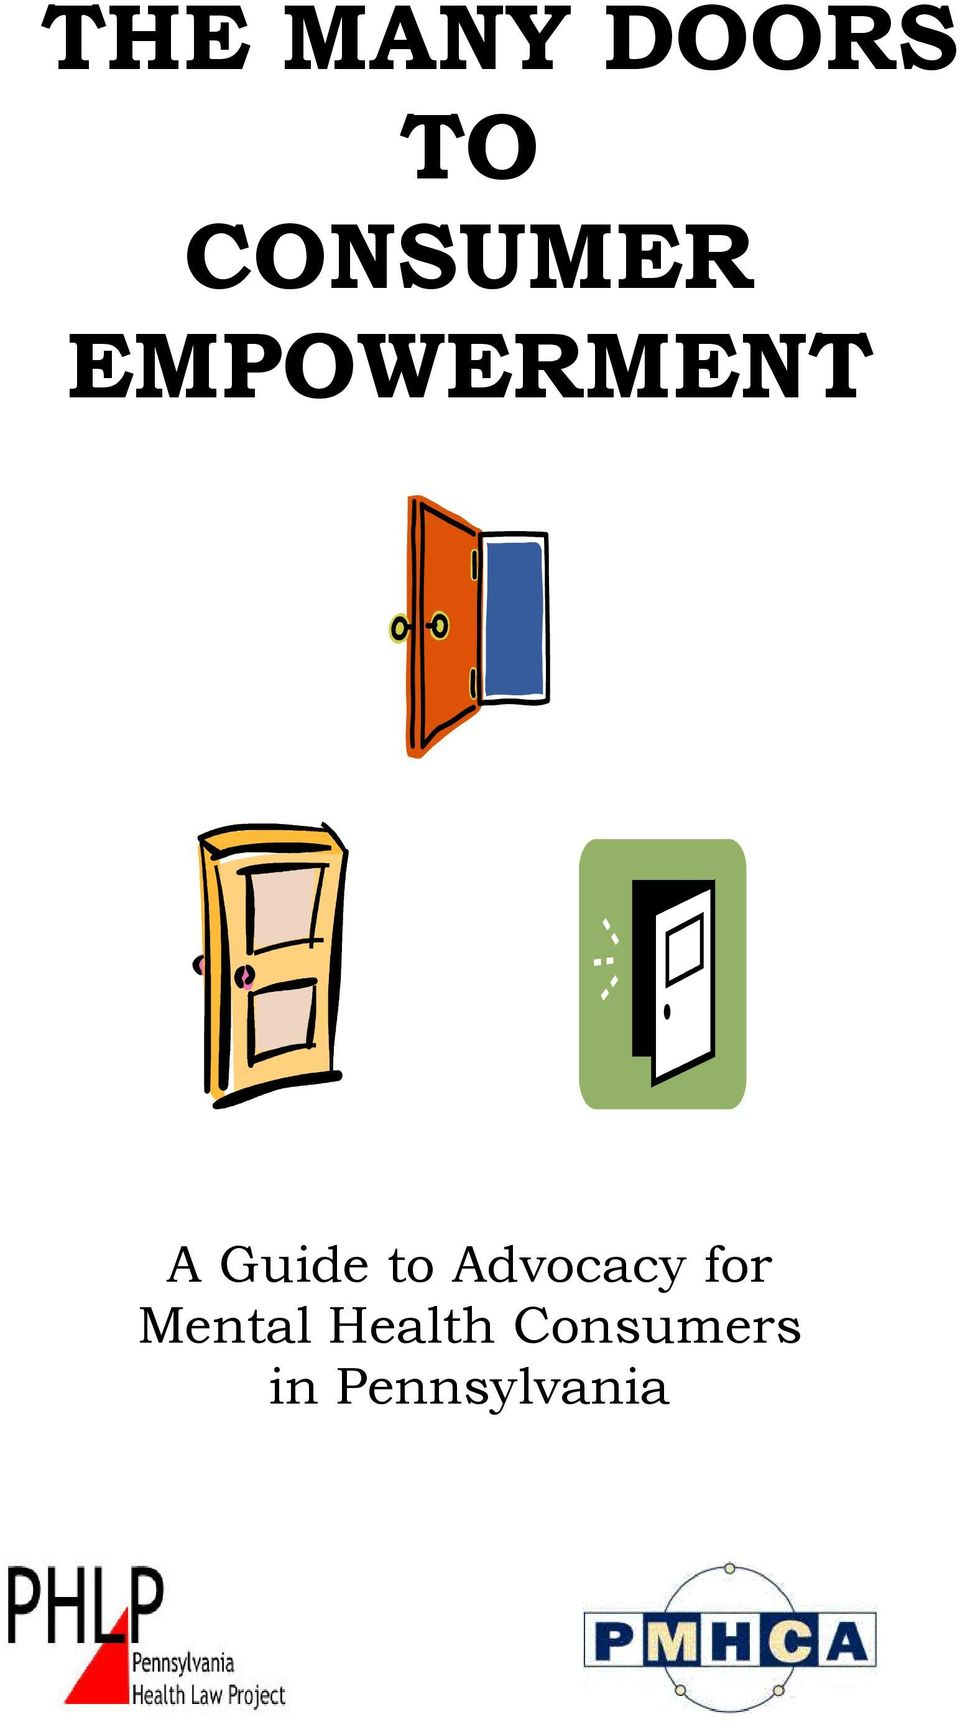 Guide to Advocacy for